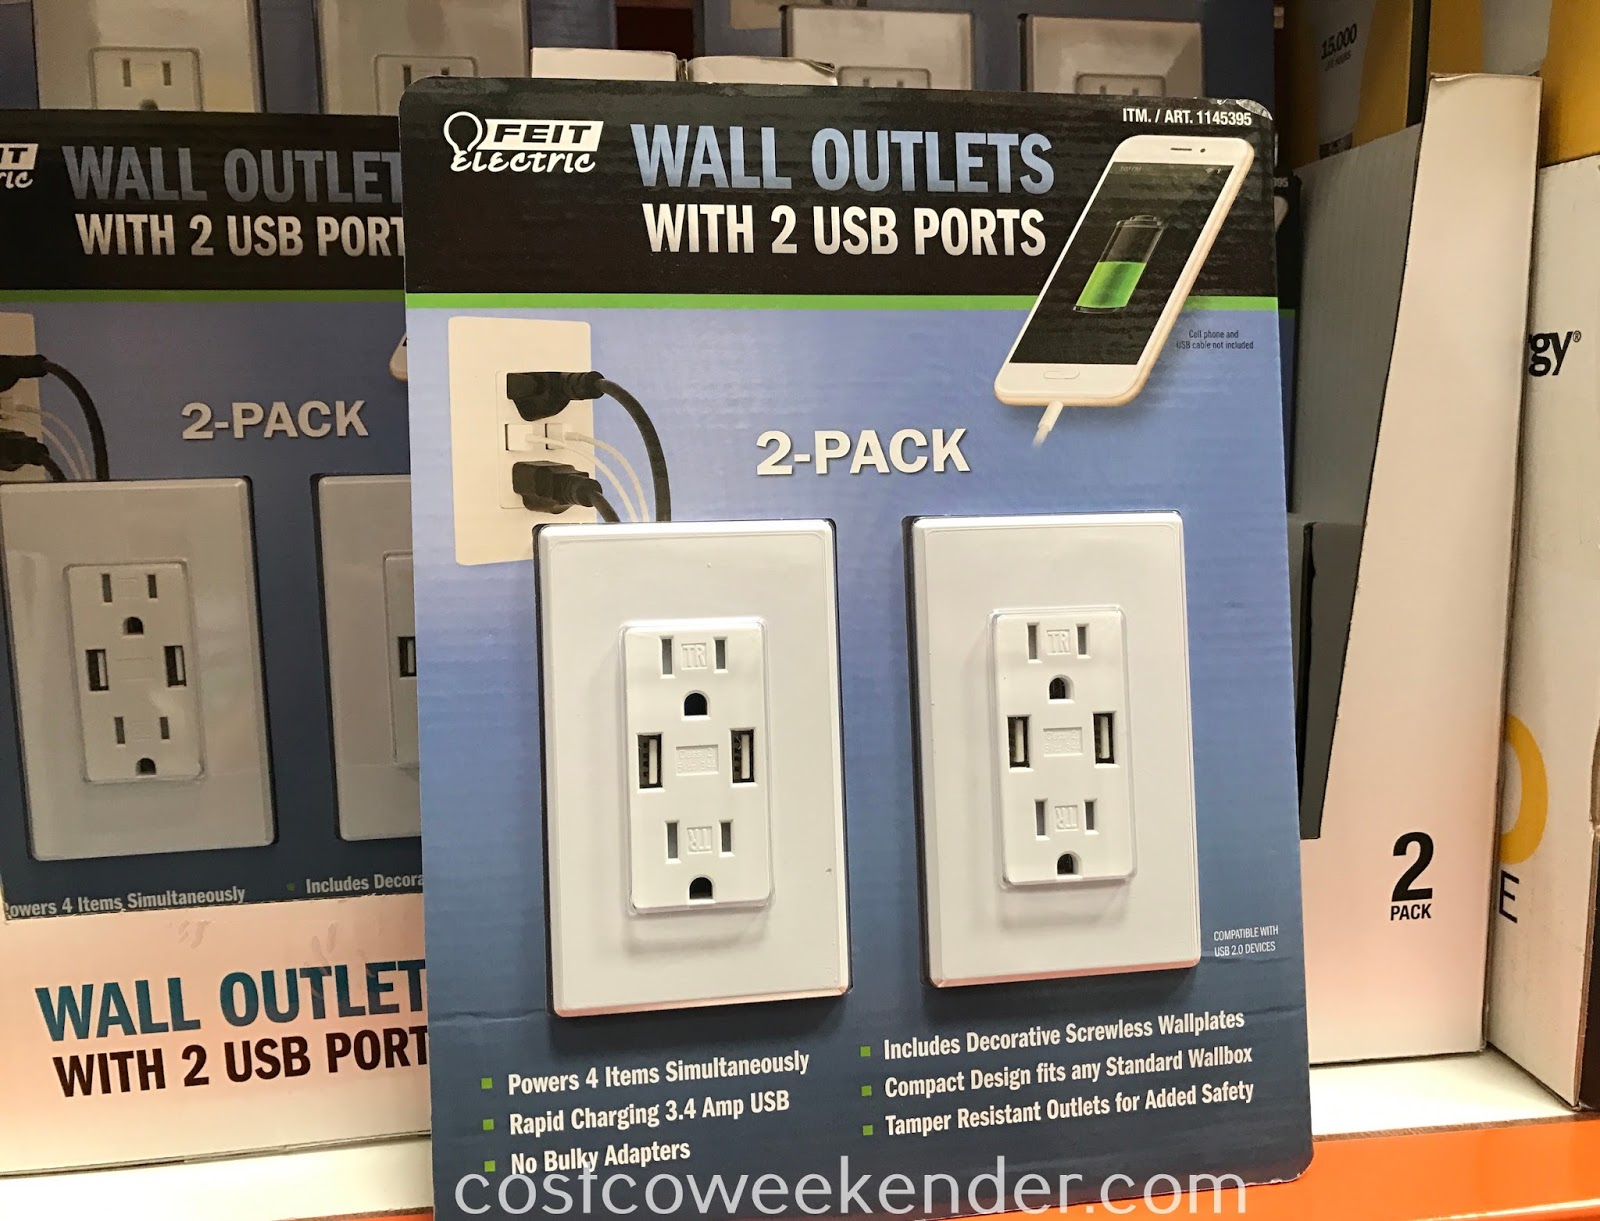 Charge up to 4 devices simultaneously with the Feit Electric Wall Outlets with USB Ports